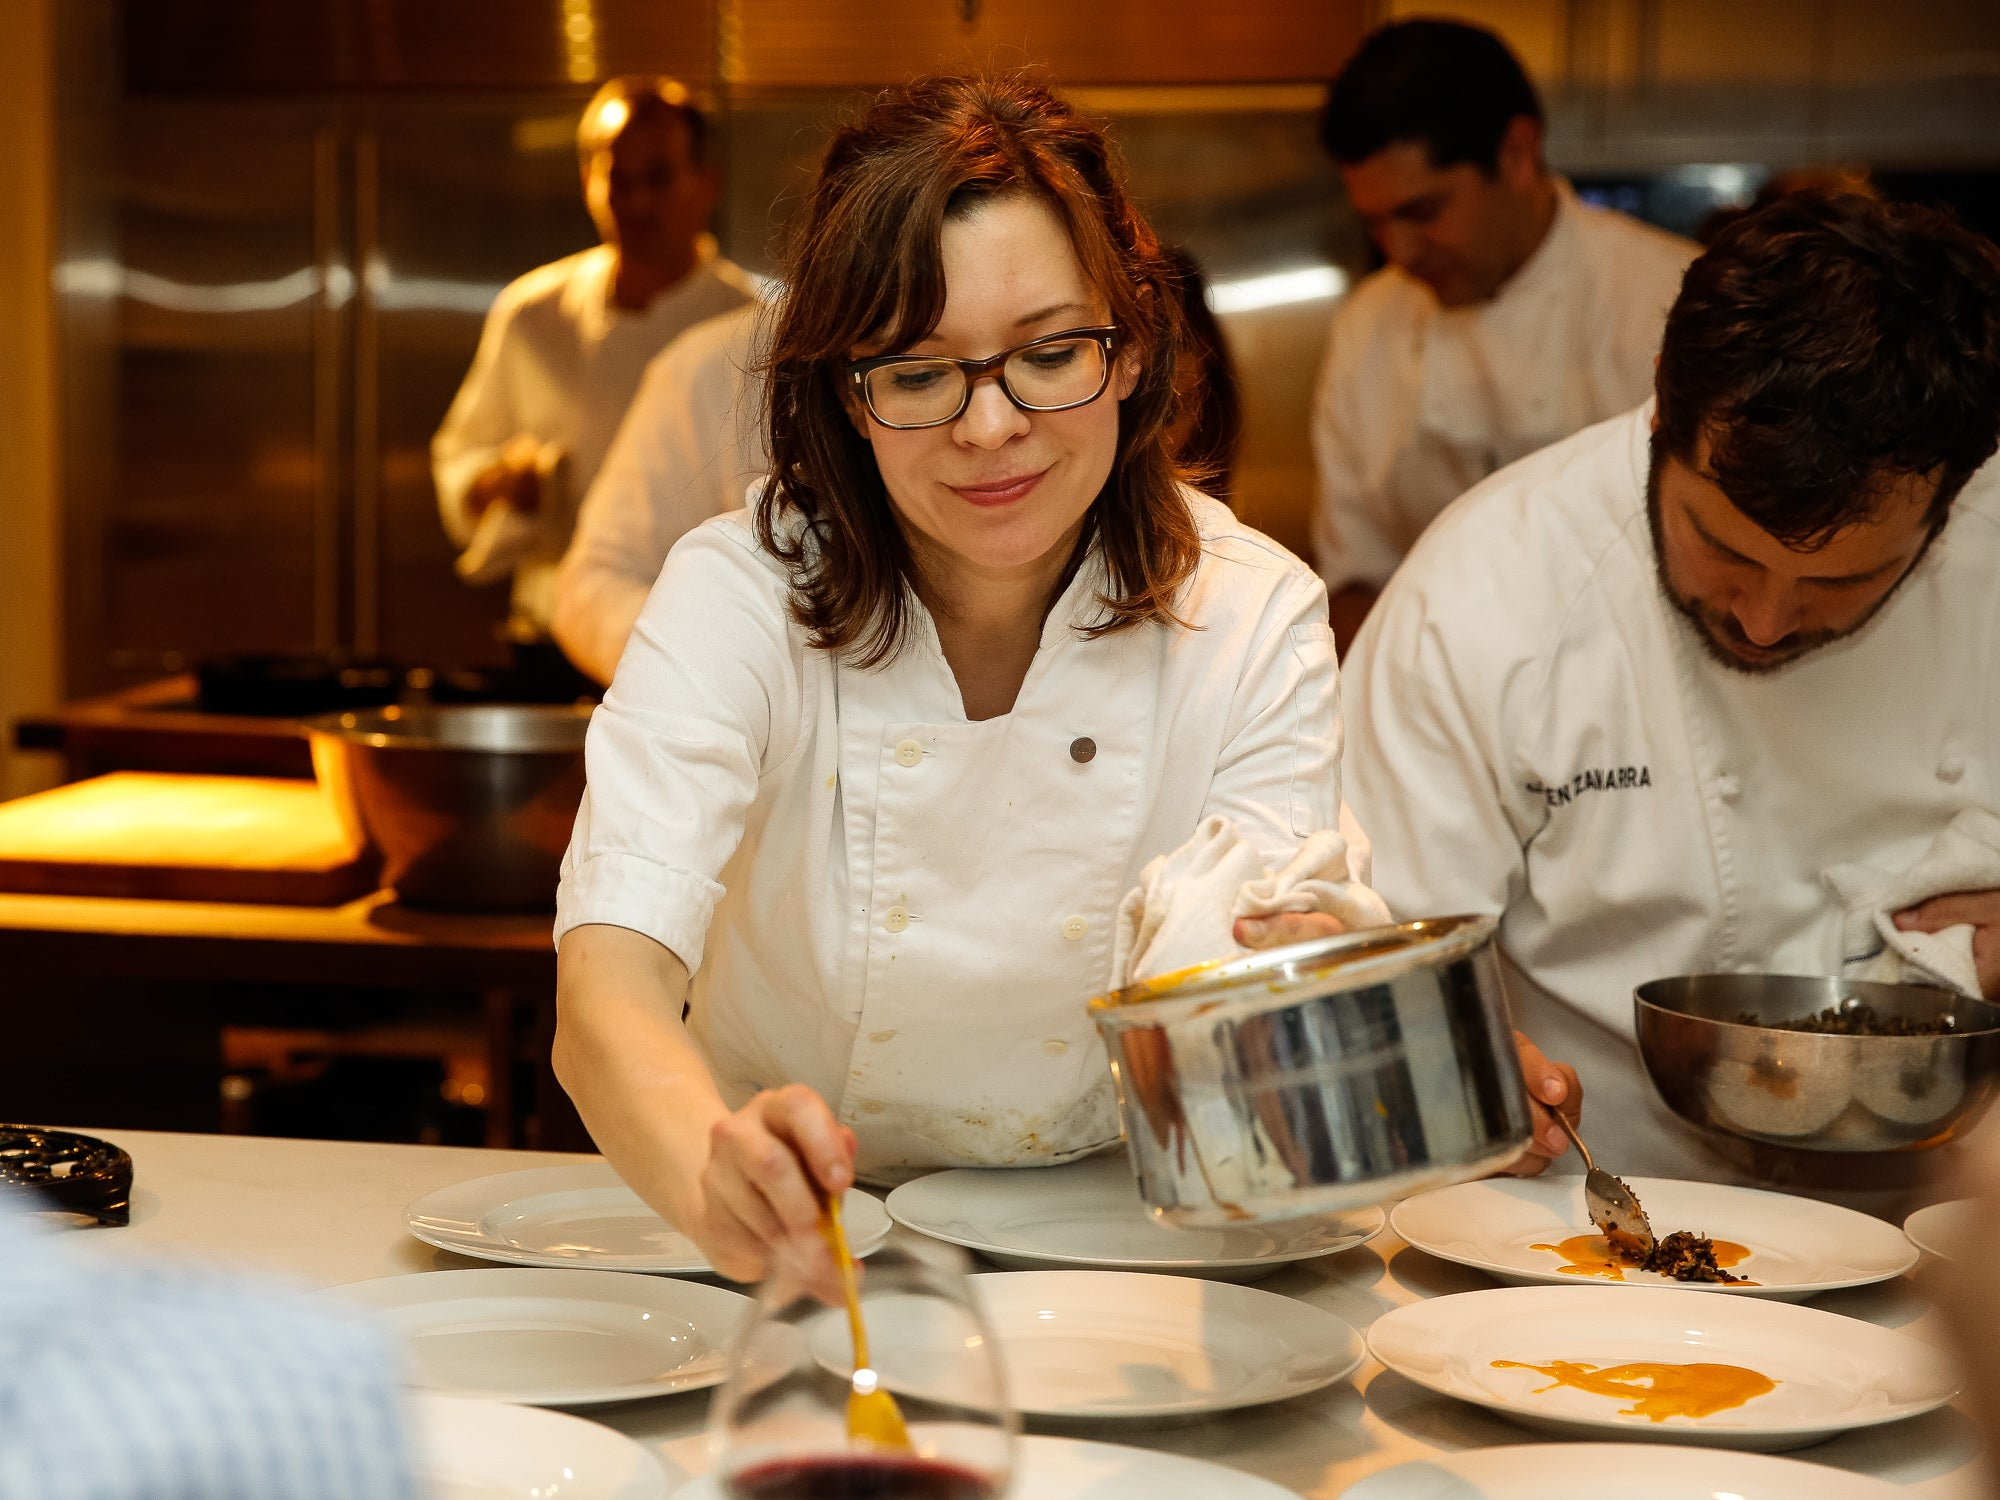 Scenes from SAVEUR supper with Chef Amy Thielen